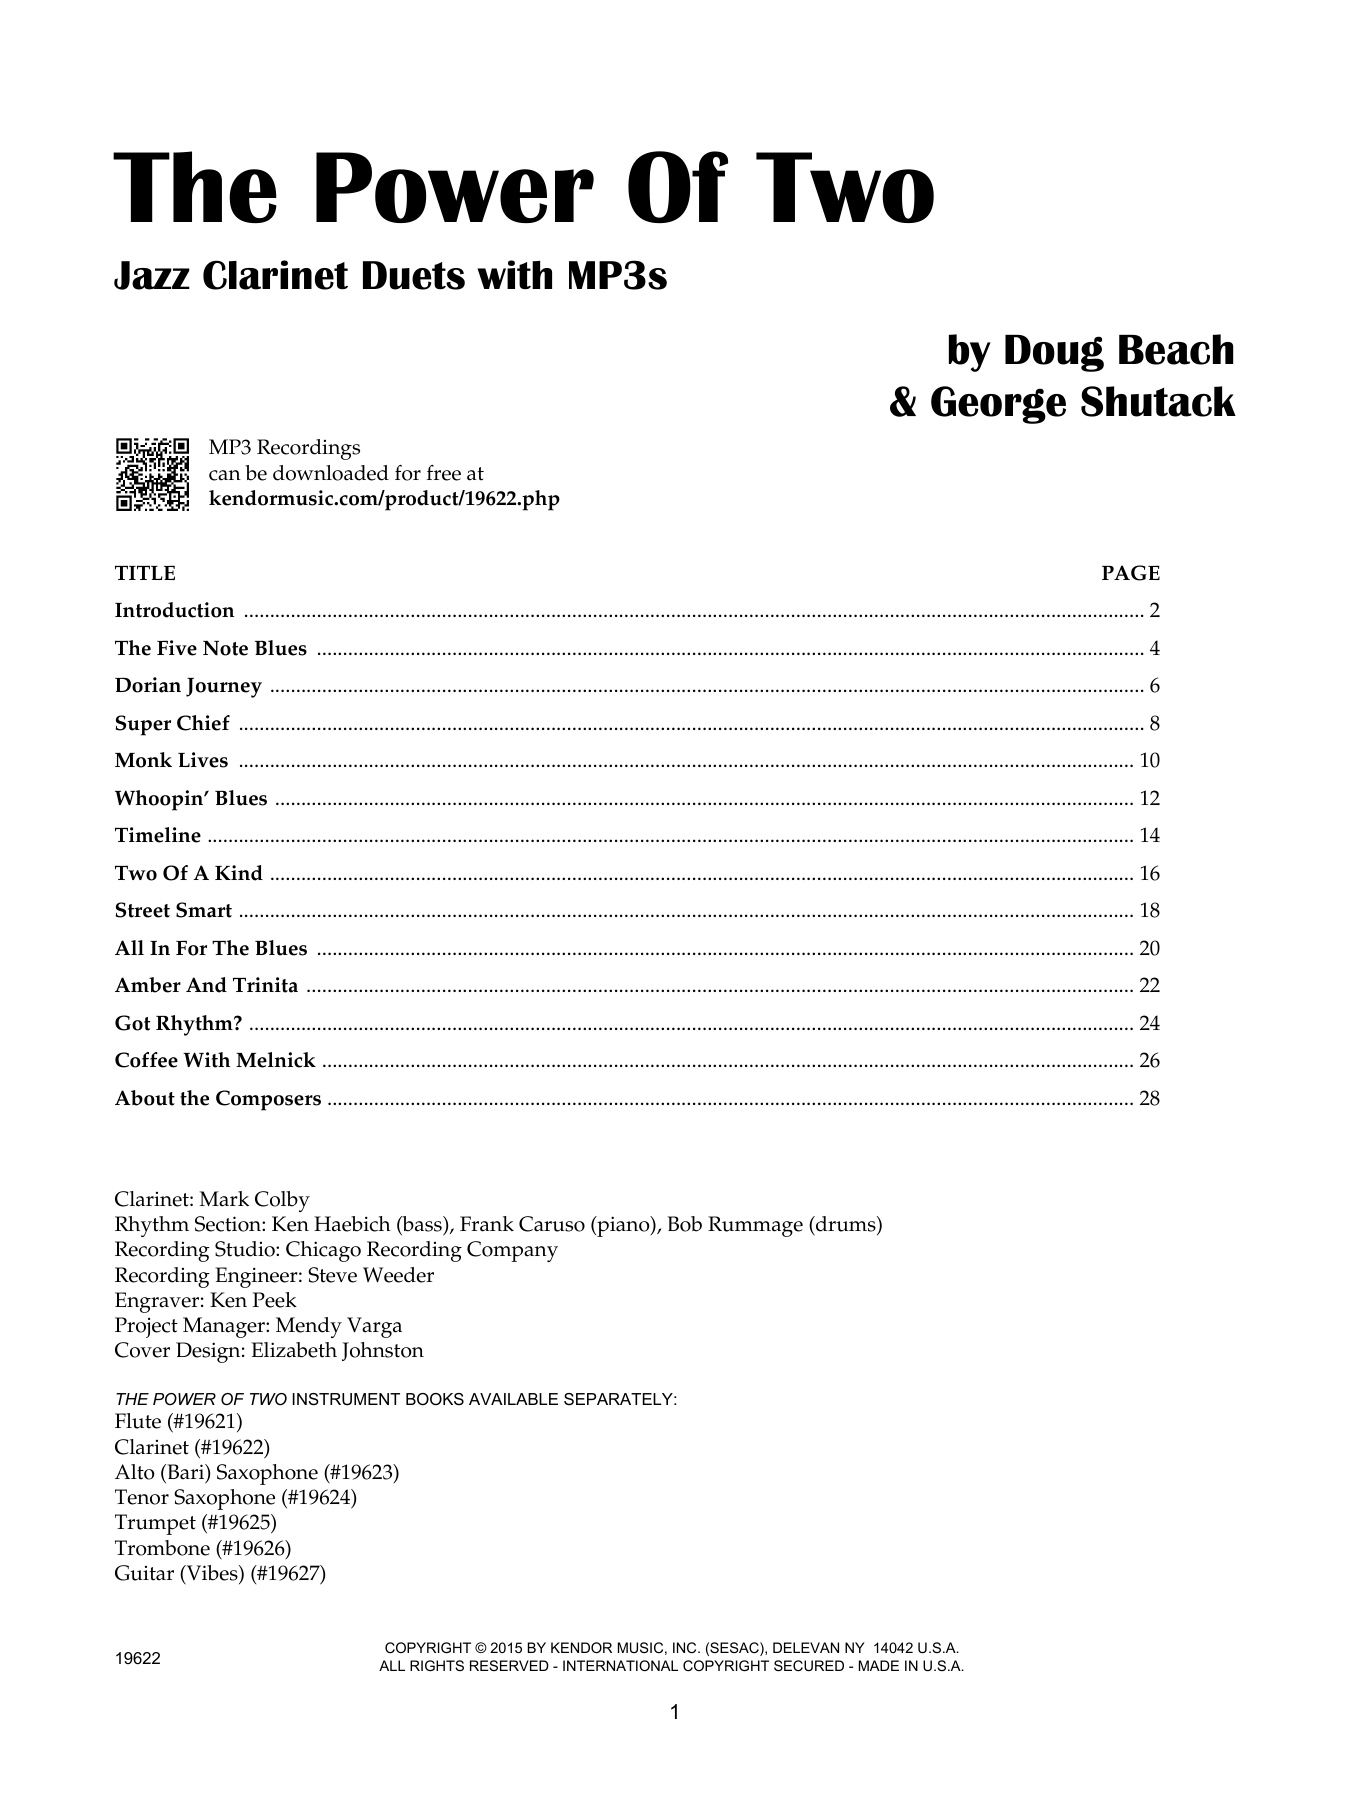 The Power Of Two - Clarinet Sheet Music